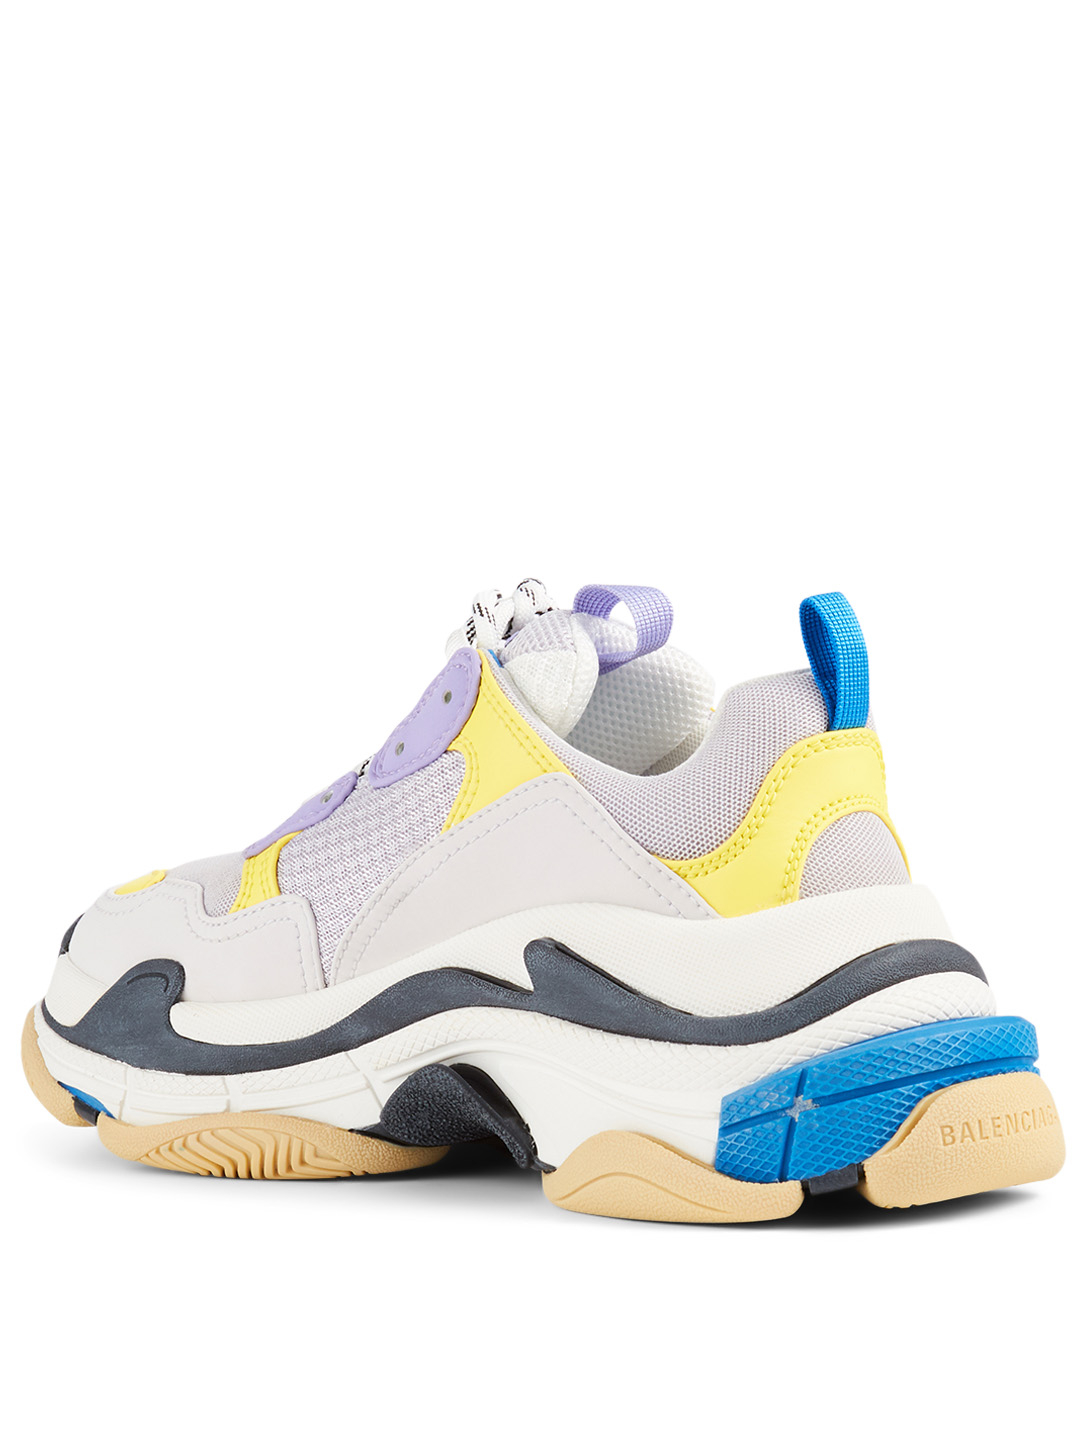 BALENCIAGA Triple S Mesh And Leather Sneakers Women's White